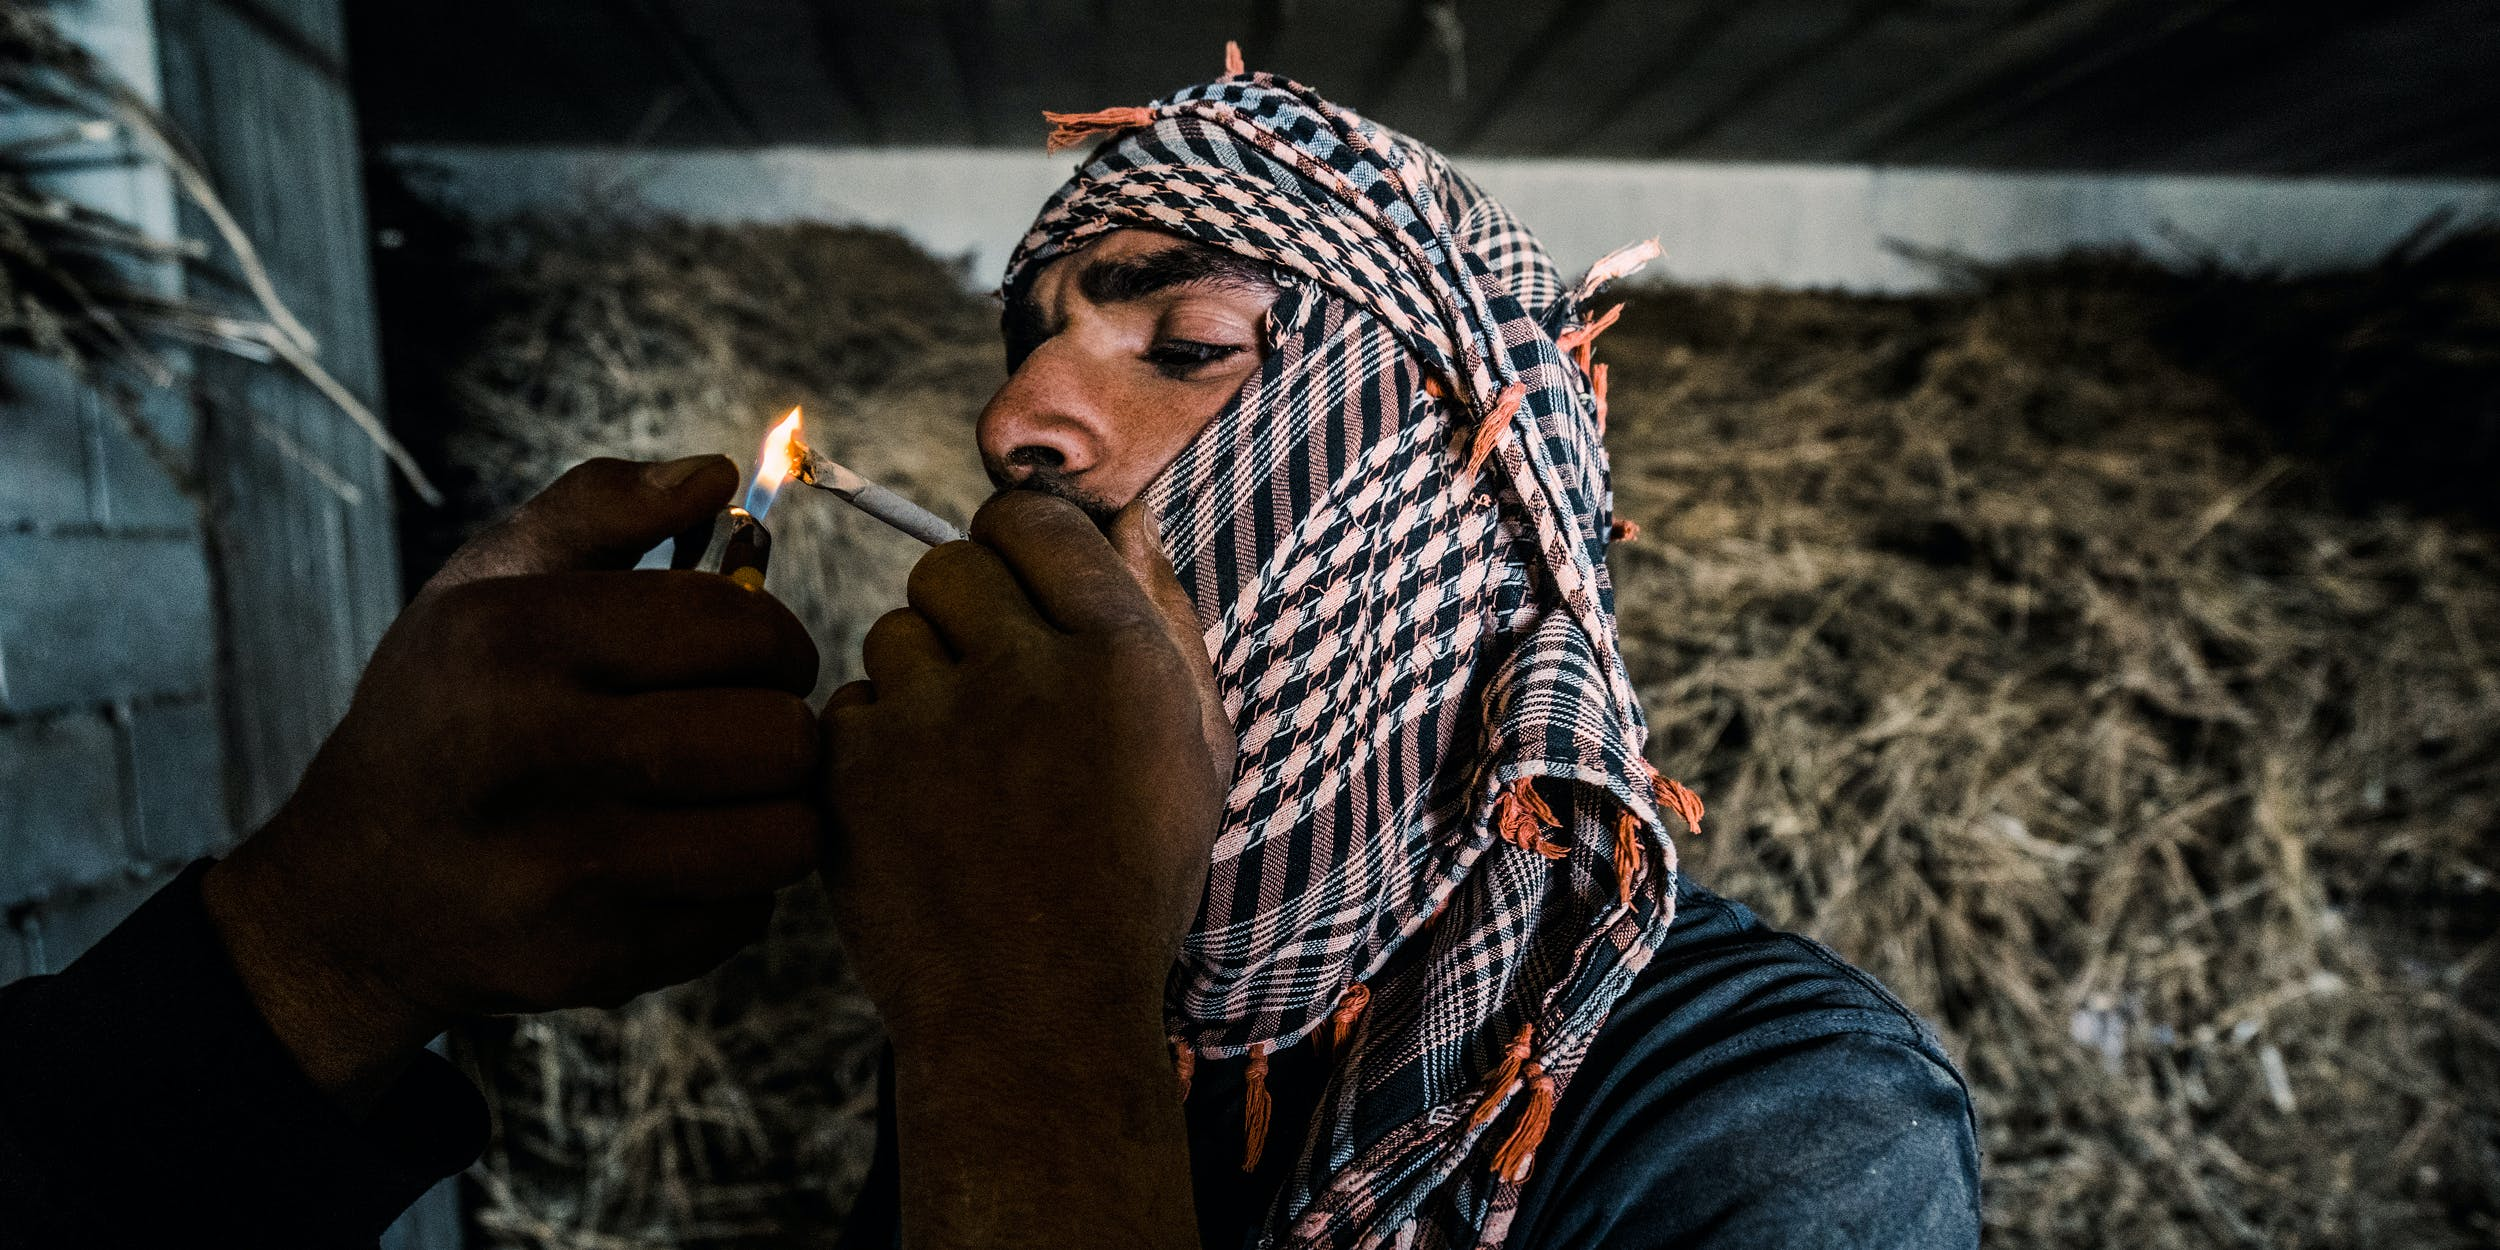 Is Cannabis Legalization Possible Anywhere In The Middle East?